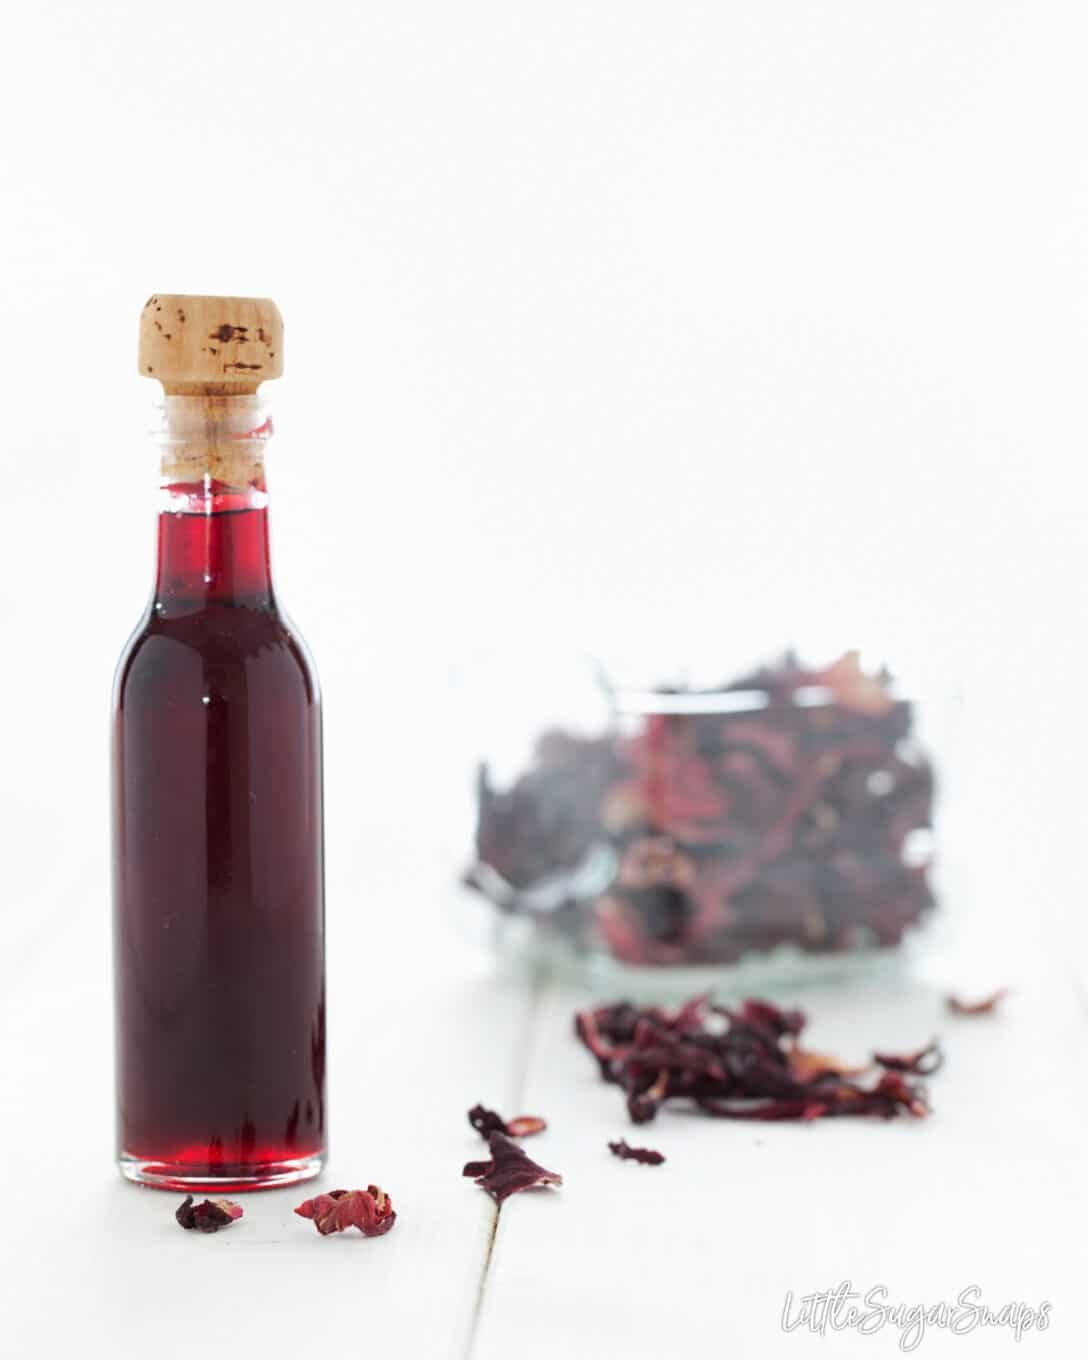 A bottle of homemade hibiscus syrup with dried flowers in the background